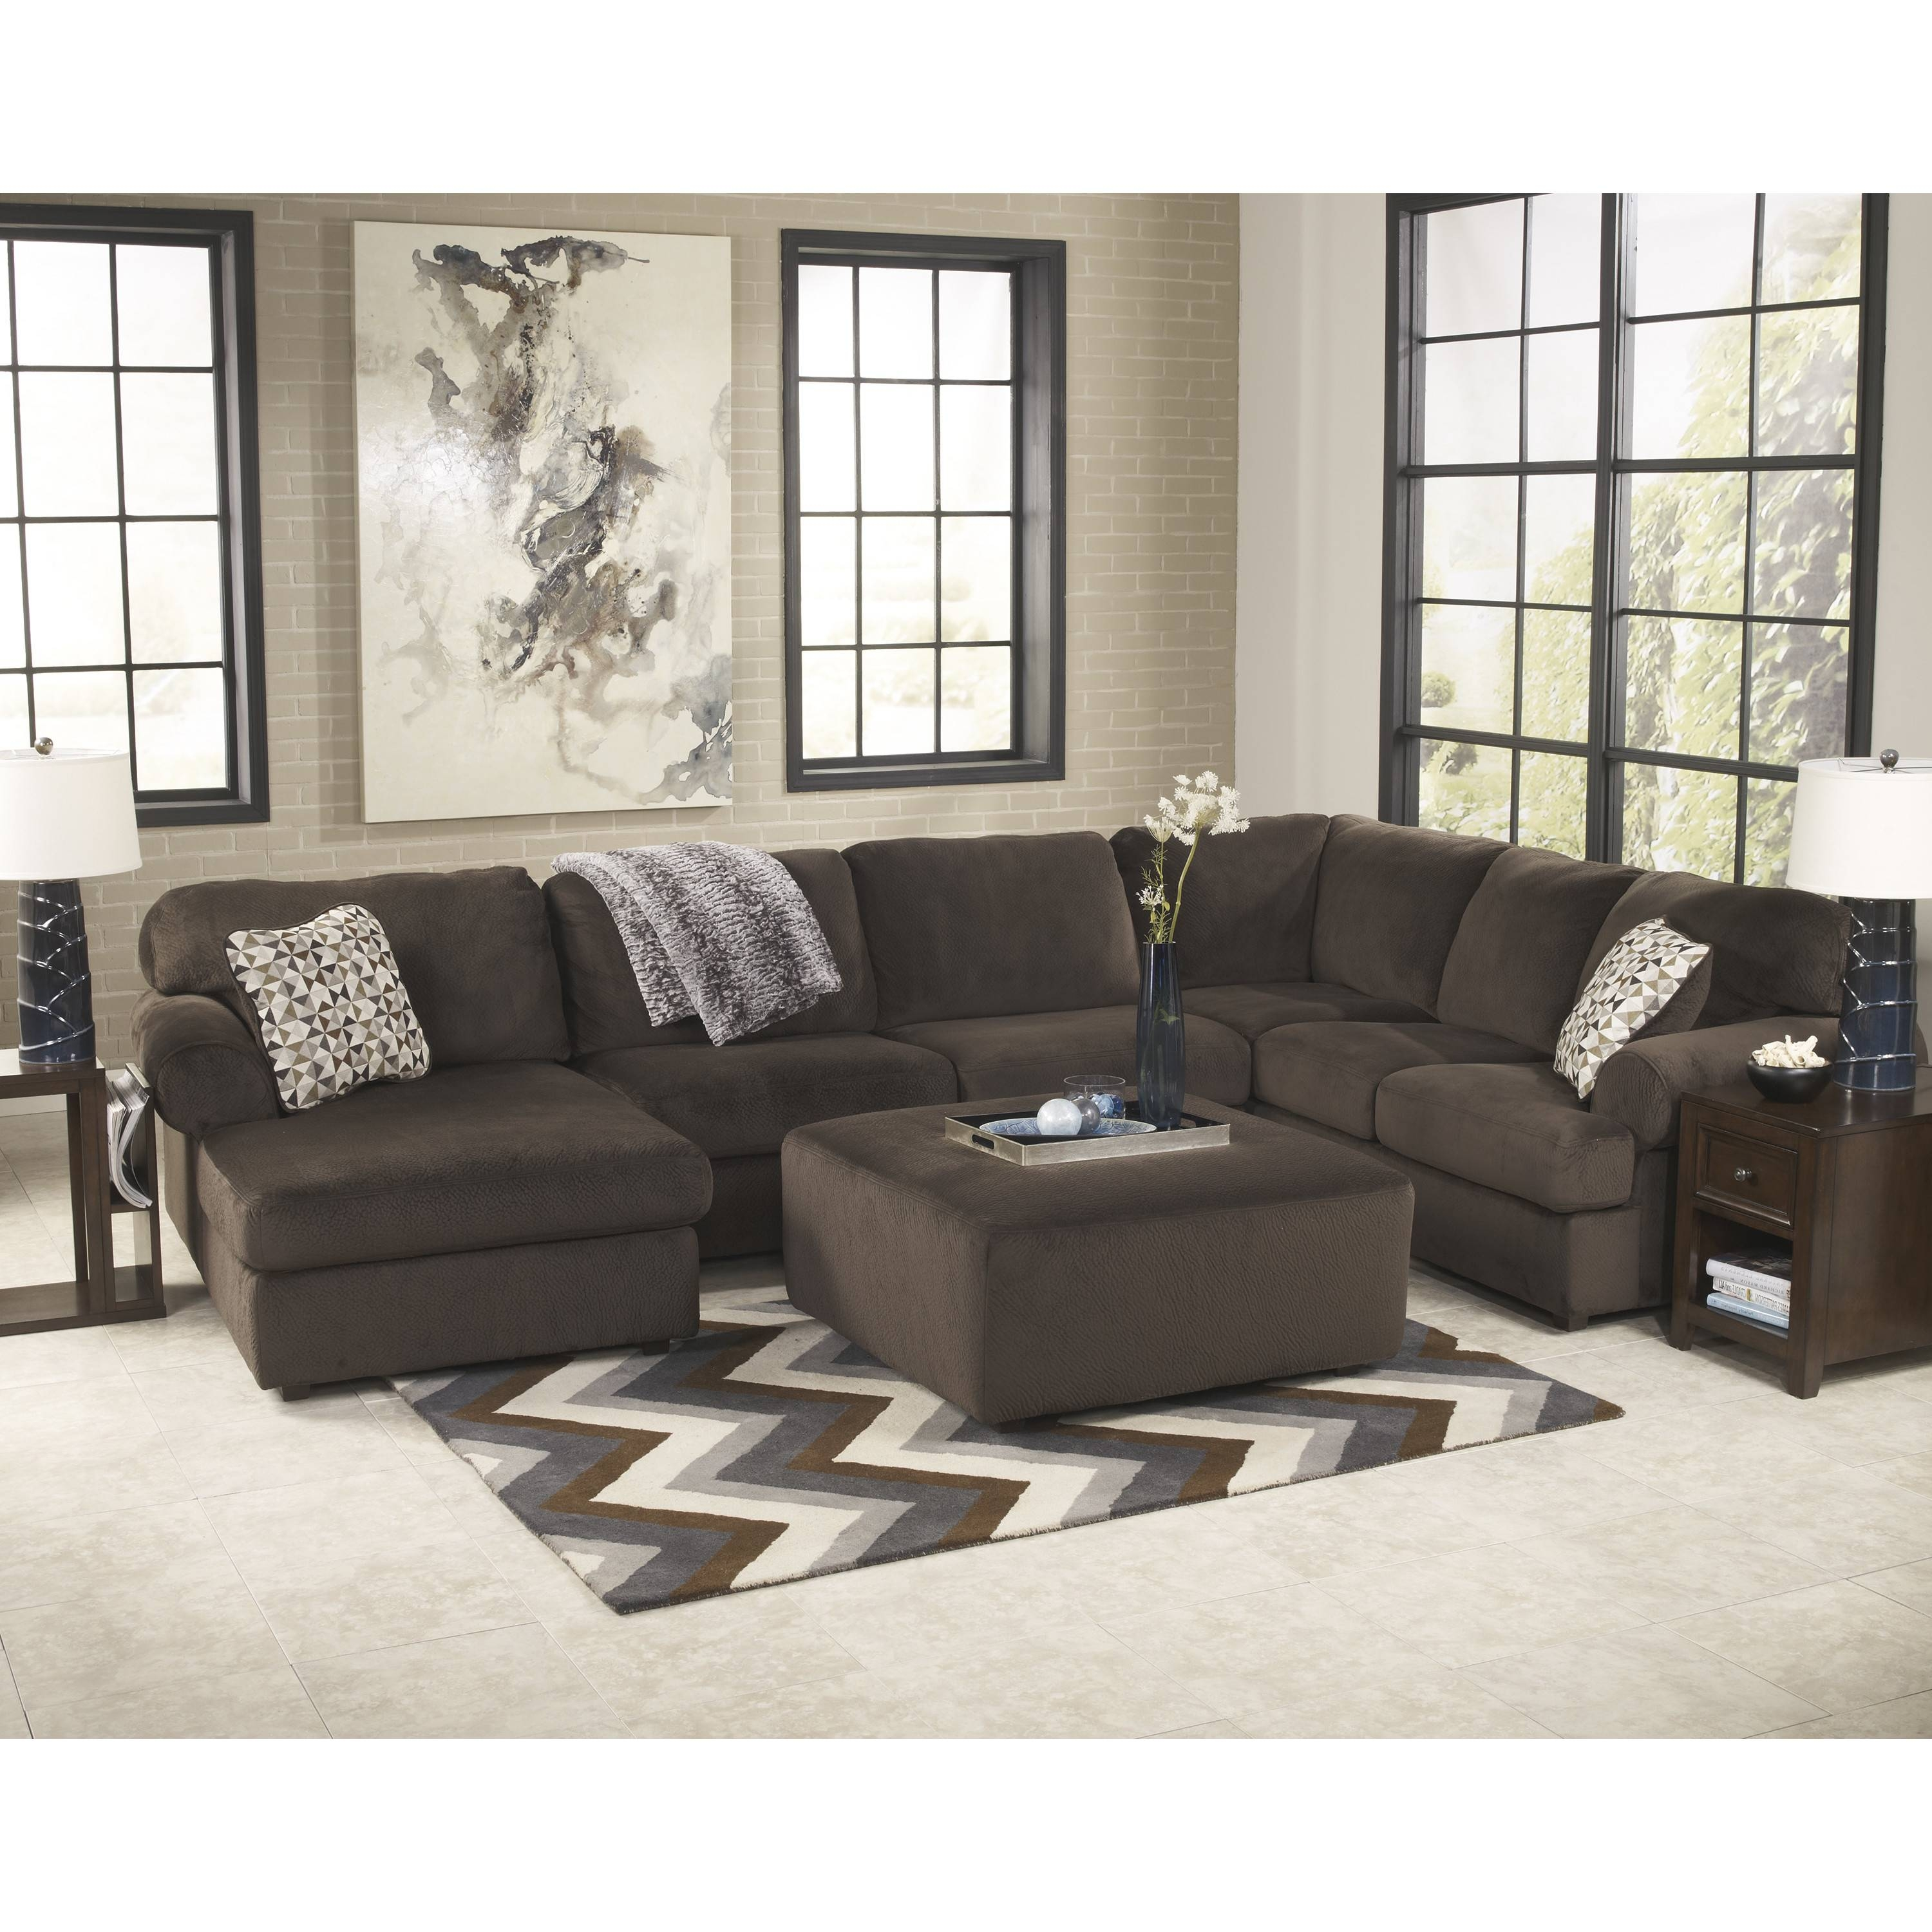 Latest Trend Of Comfy Sectional Sofas 93 With Additional Best in Quality Sectional Sofa (Image 8 of 30)